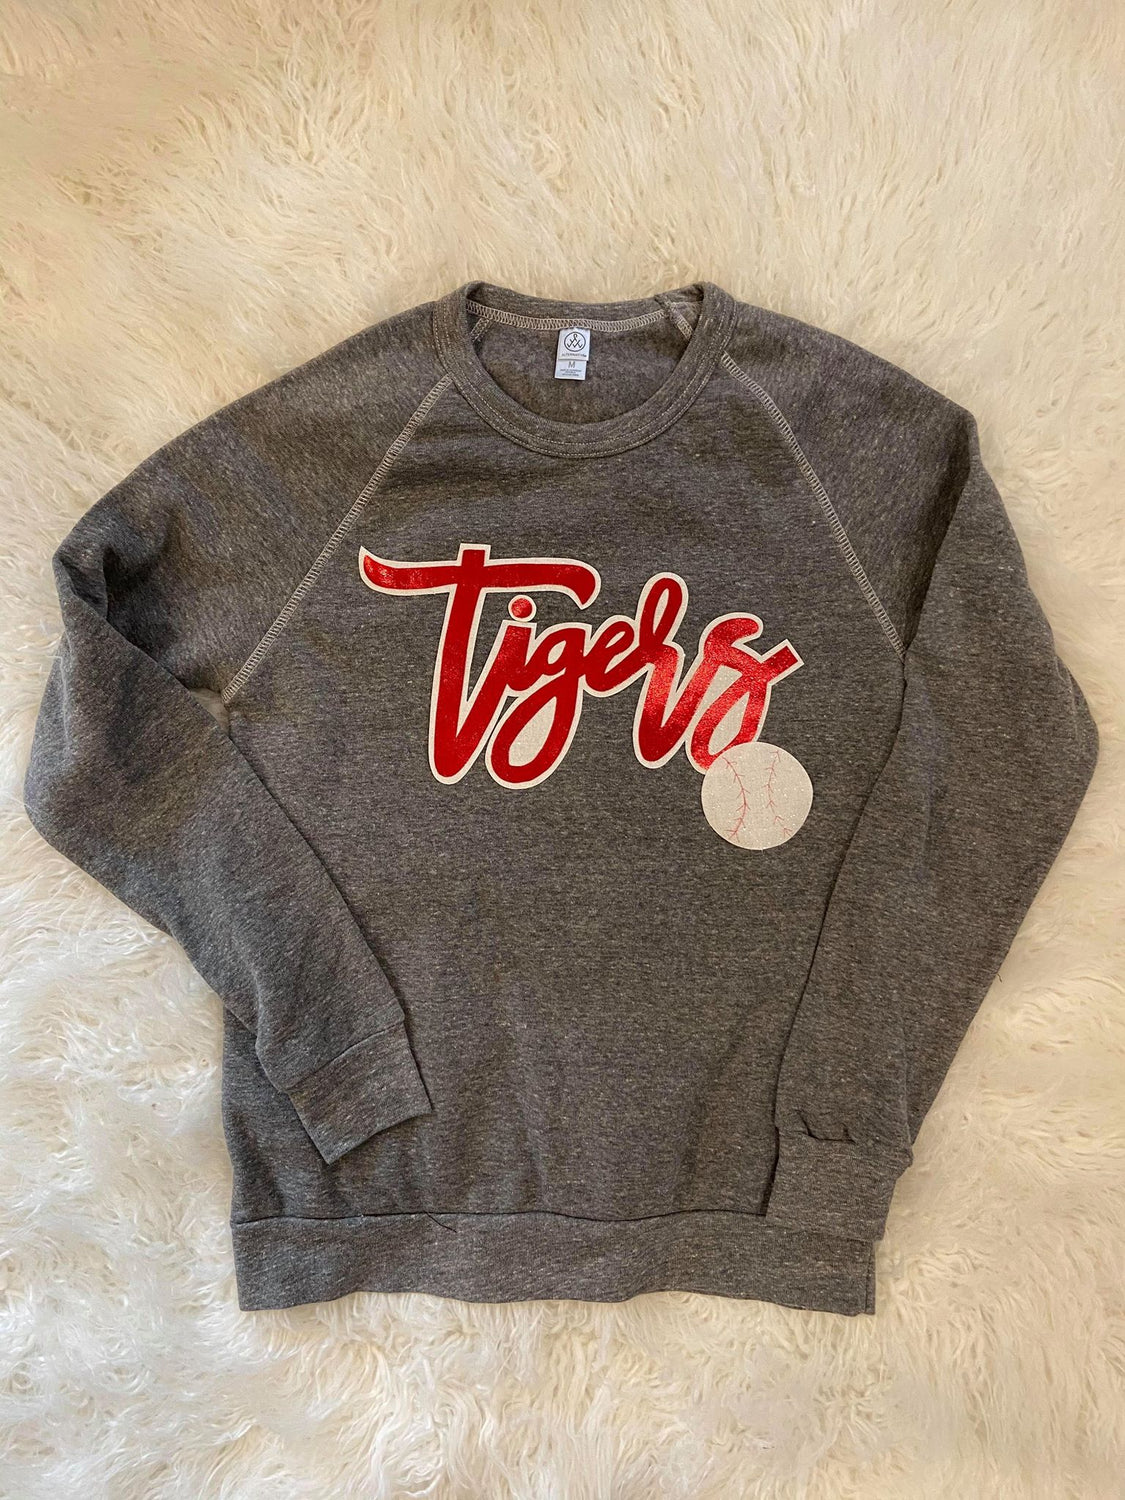 CURSIVE TIGERS FLEECE CREW